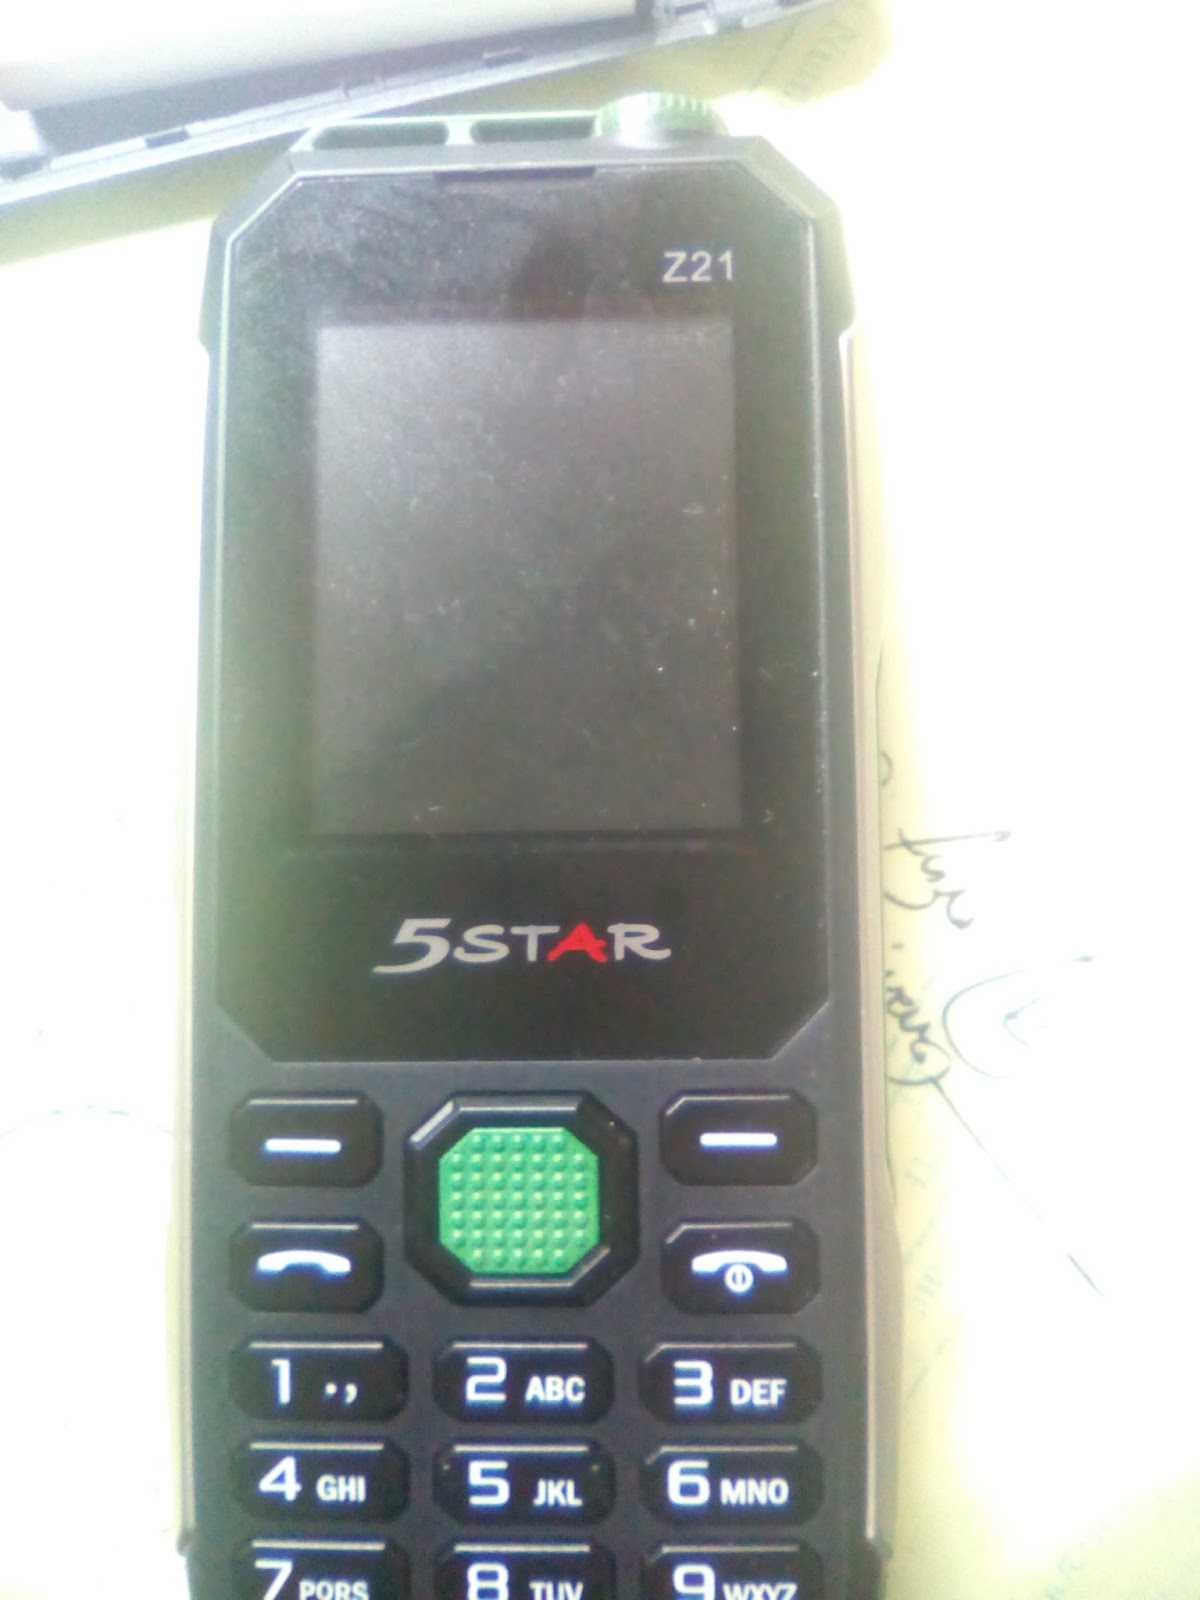 5STAR Z21 FLASH FILE SPD 6533 FIRMWARE DEAD BOOT REPAIR BIN FILE